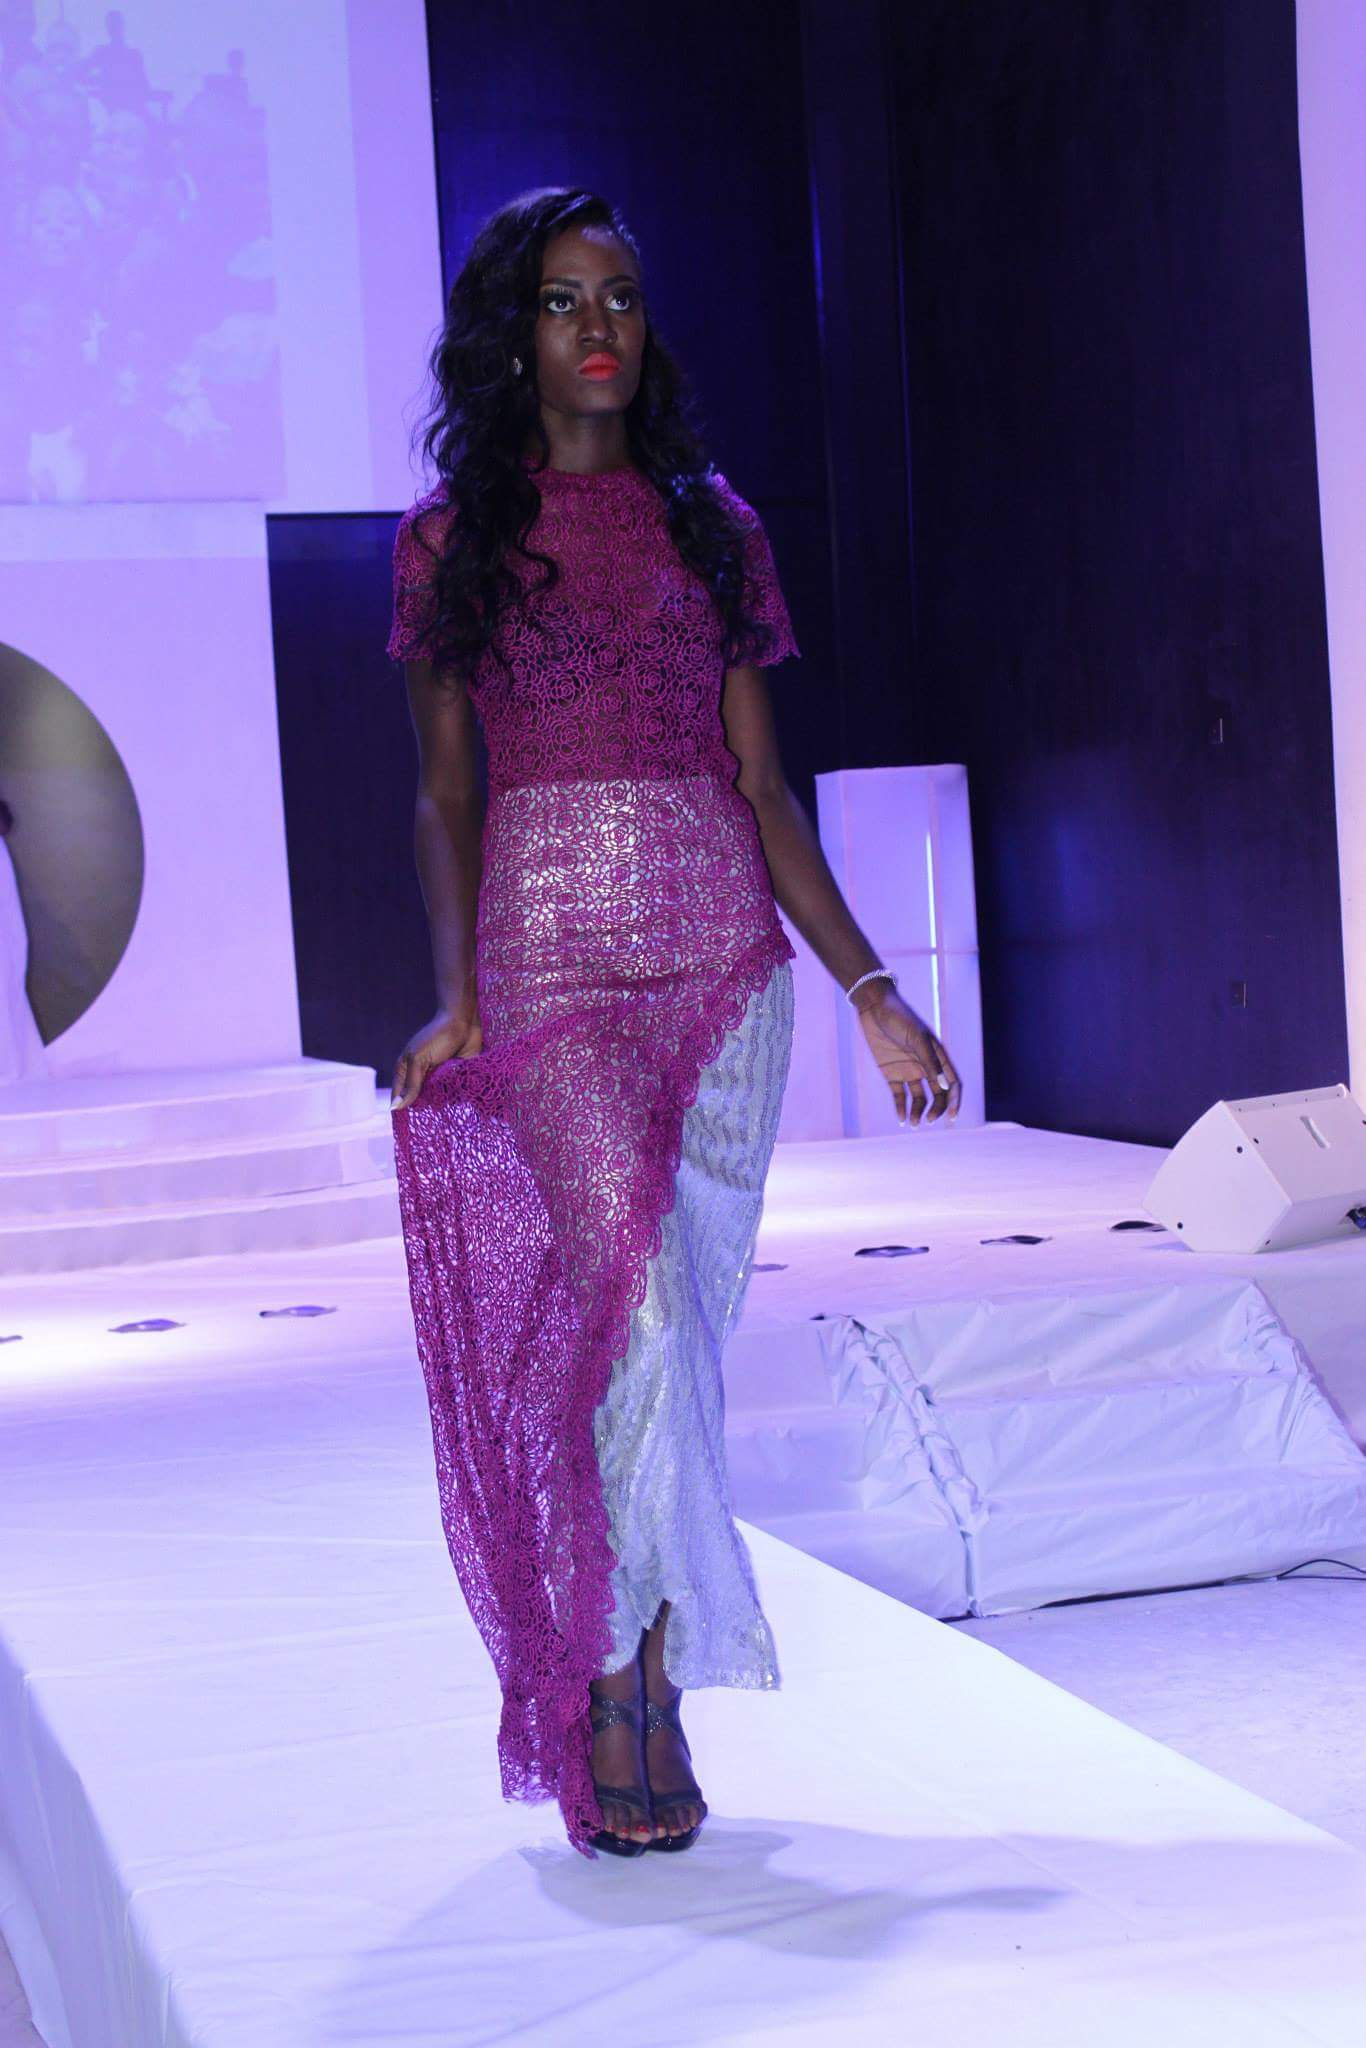 Joy Arwhere Launches Her Fashion Line: Beauline Designs